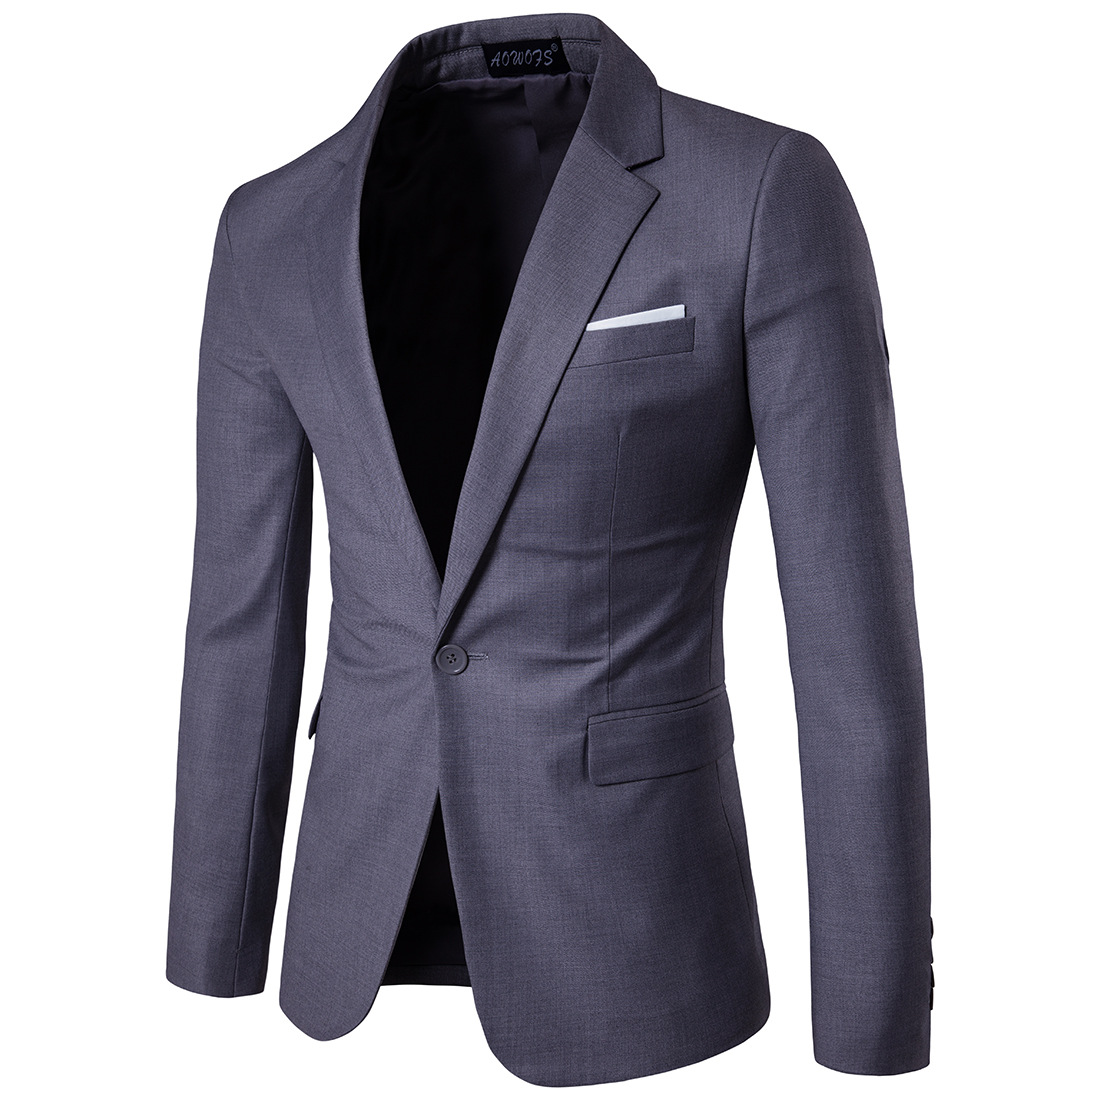 2019 Business Leisure Suit Lang Best Man Wedding One-Button Suit Jacket Men'S Wear 9-Color S-6xl Purple